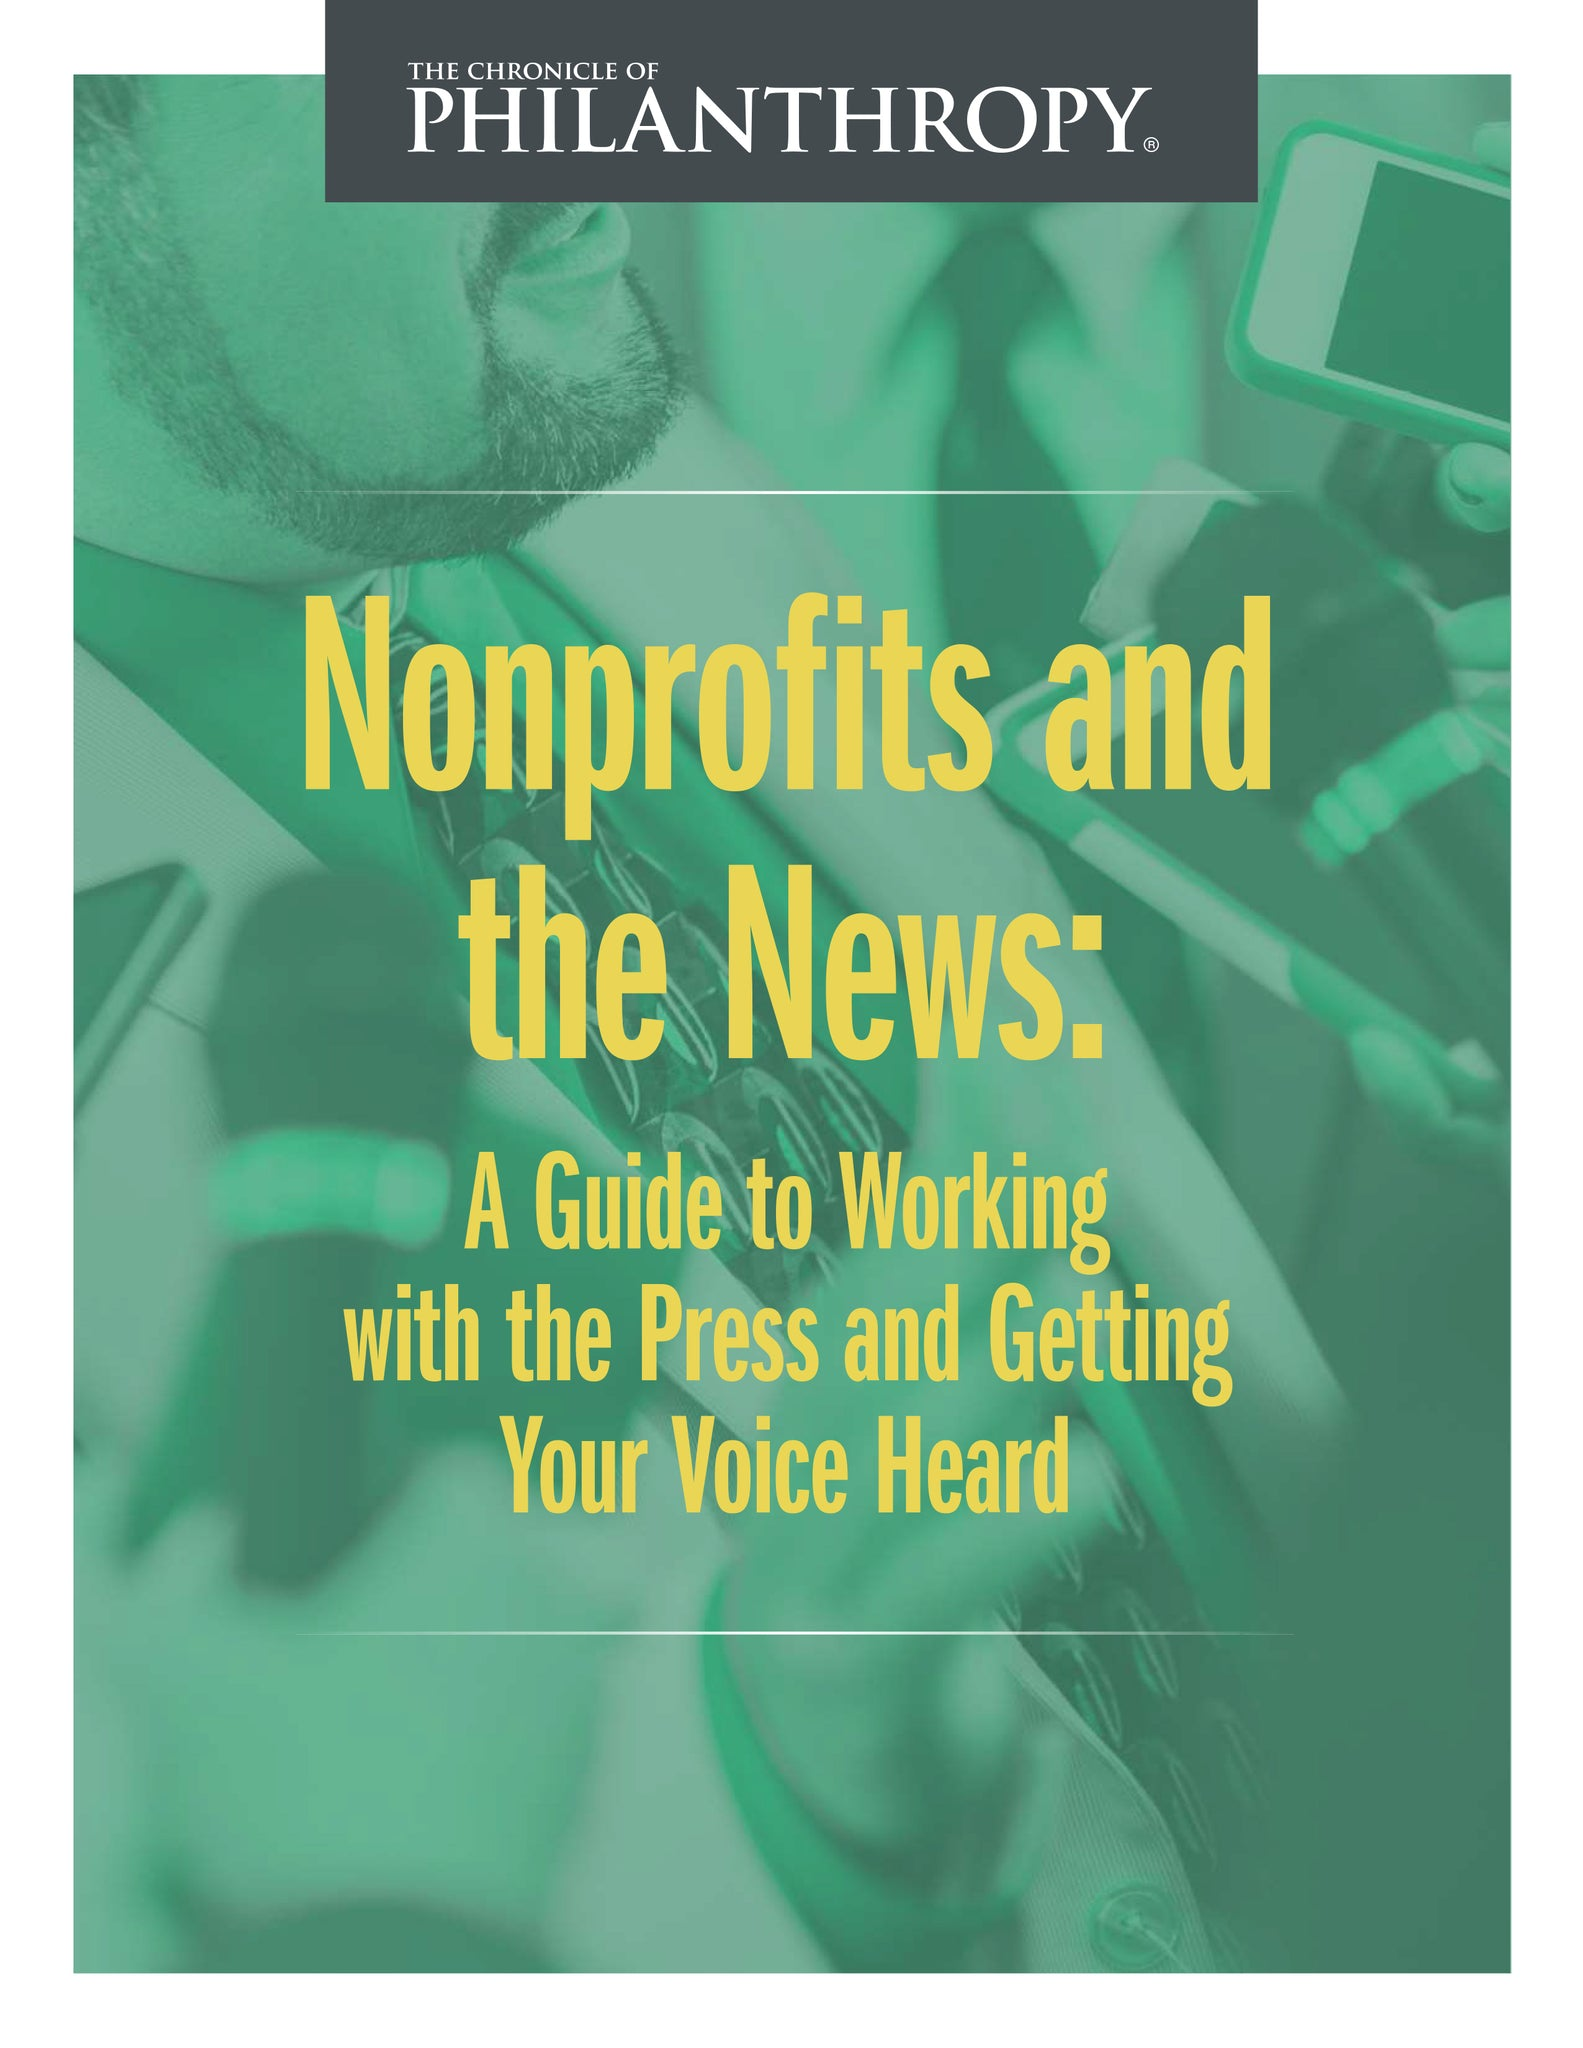 Nonprofits and the News: A Guide to Working with the Press and Getting Your Voice Heard